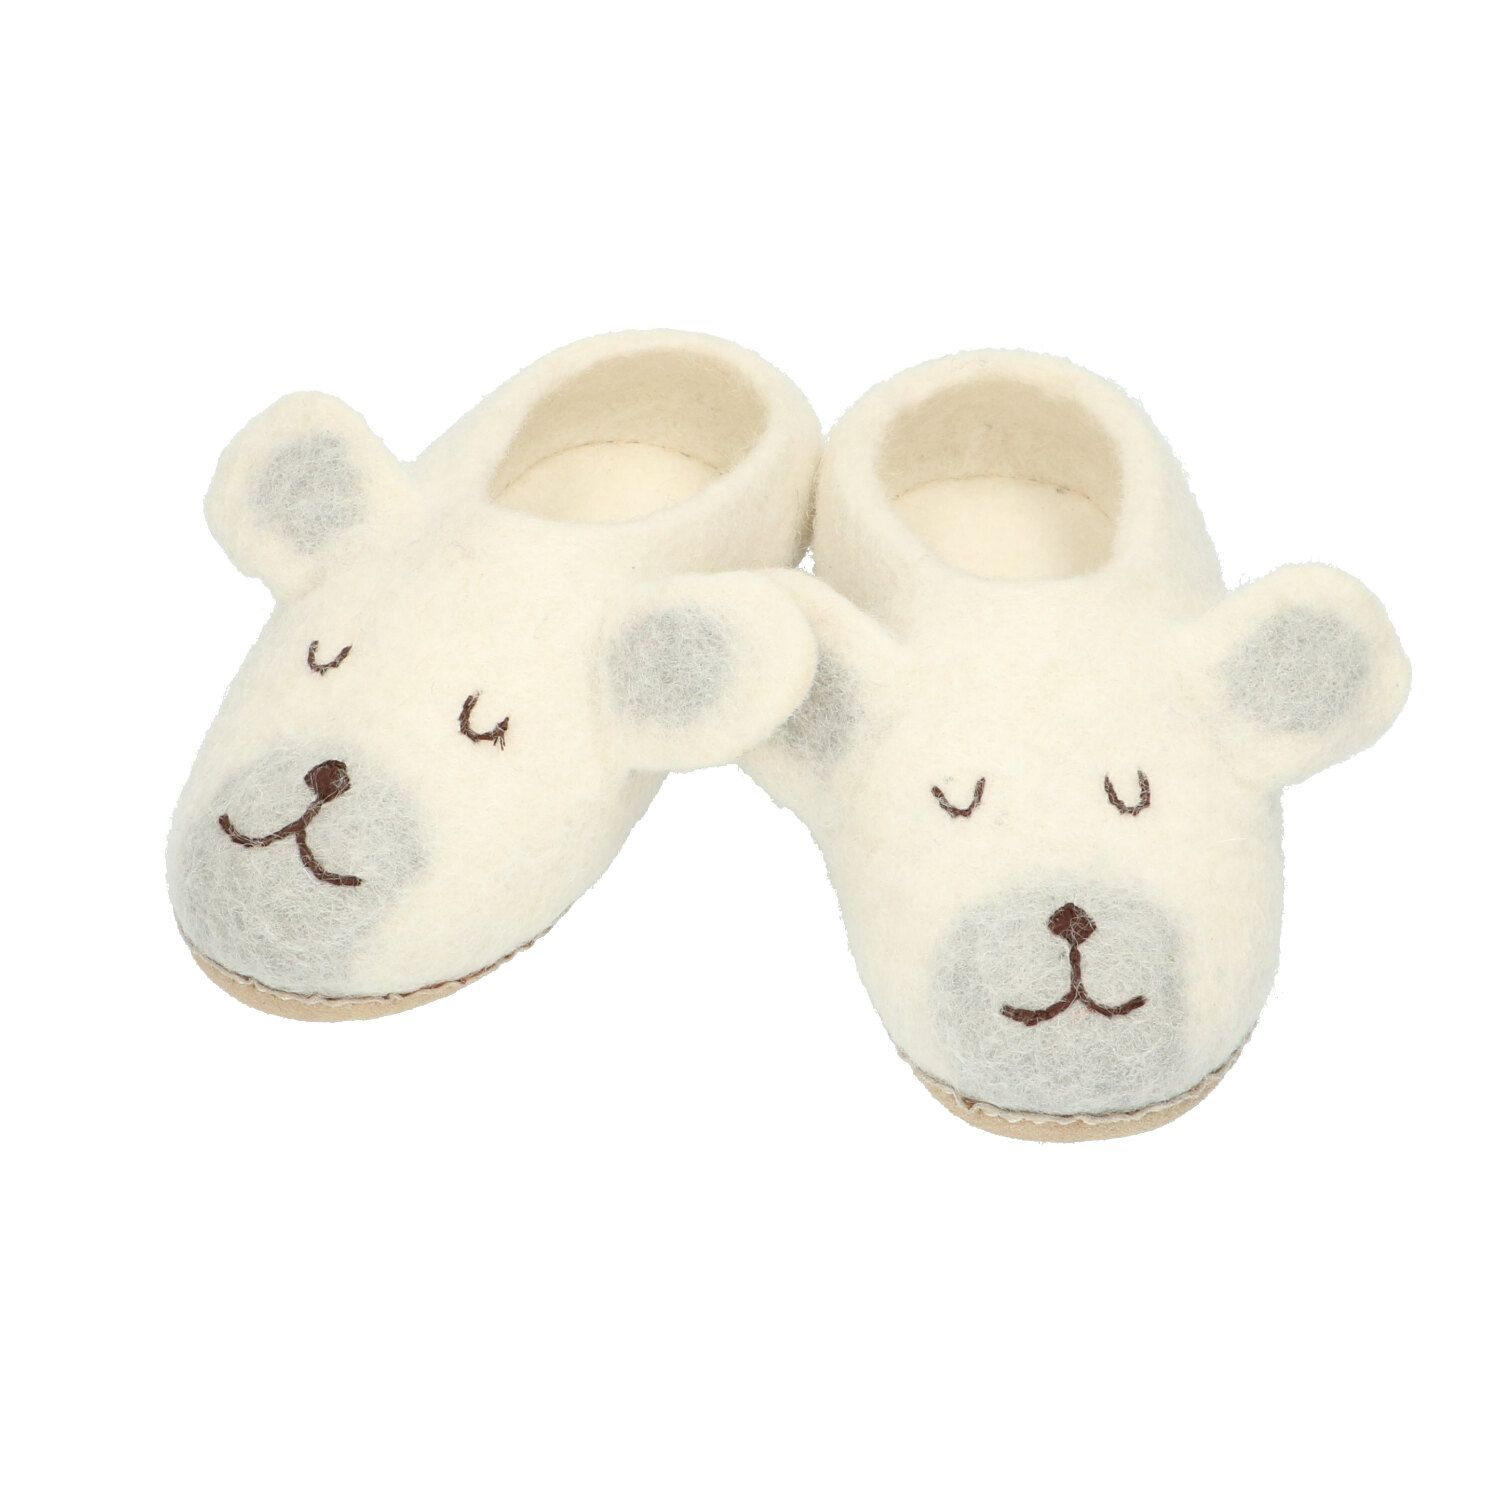 Chaussons, ours polaire, feutrine, 28/29